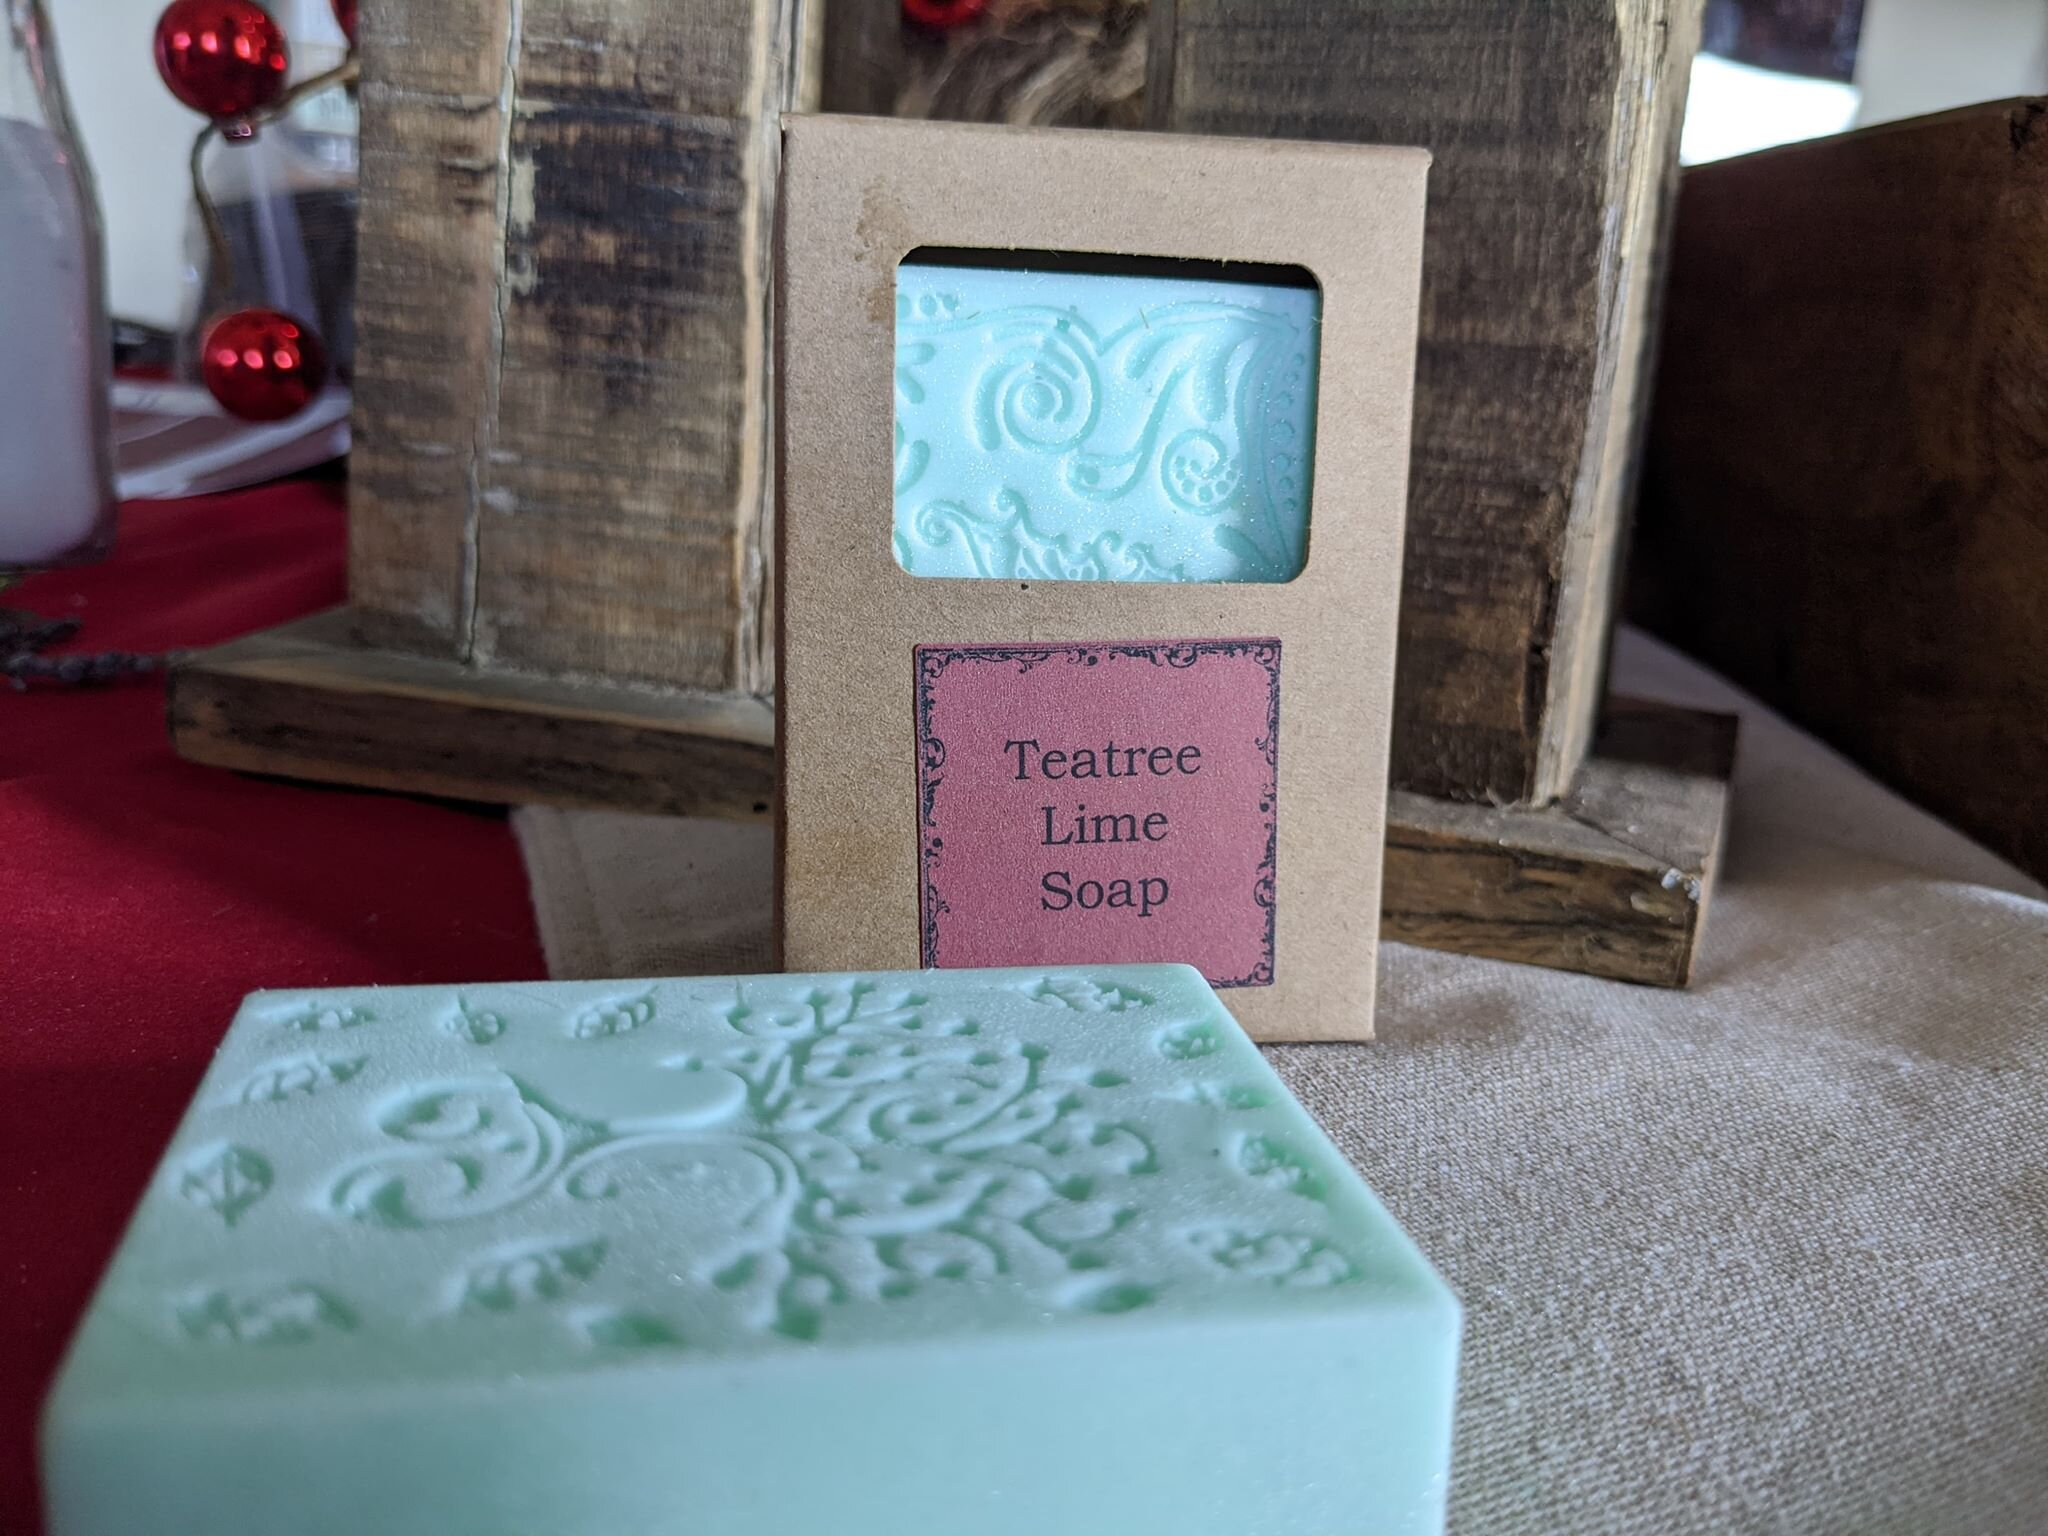 Teatree Lime Soap - The Simply Good Teatree Lime Goat's Milk Soap was designed to promote strong skin health while providing a refreshing scent.  Teatree and Lime Essential oils are used to treat acne, athlete's foot, contact dermatitis and even head lice while supporting a healthy immune system and working to tighten the skin.  This makes for a perfect bar to rejuvenate the skin.